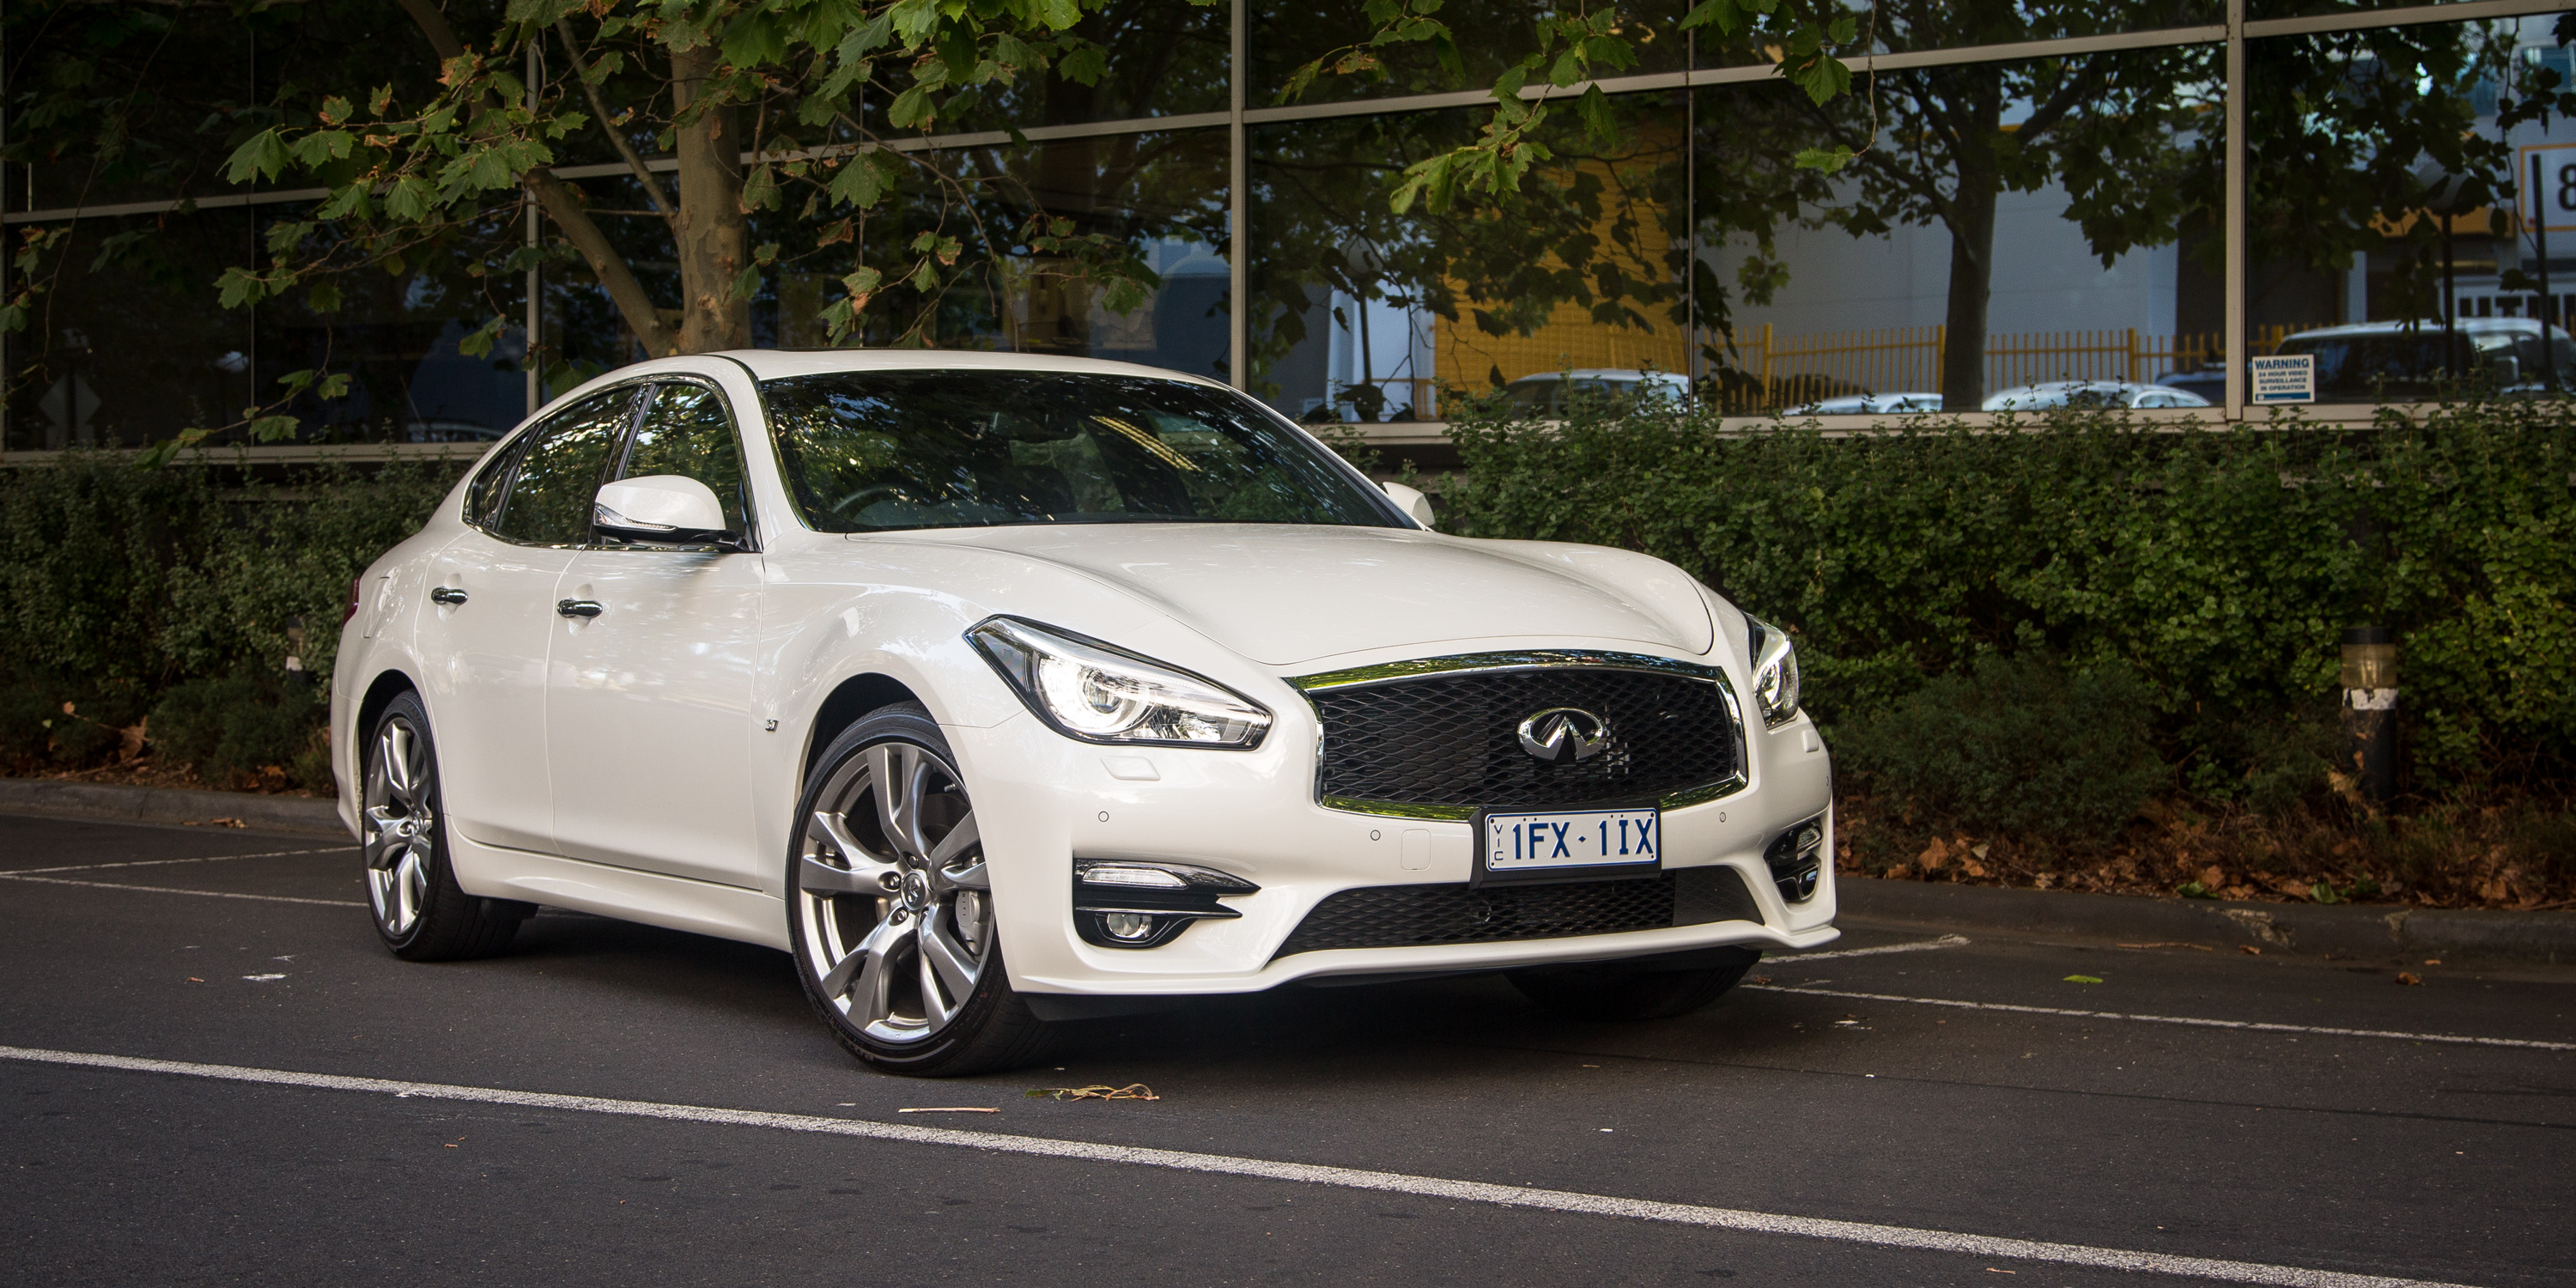 2016 Infiniti Q70 S Premium Review - photos | CarAdvice